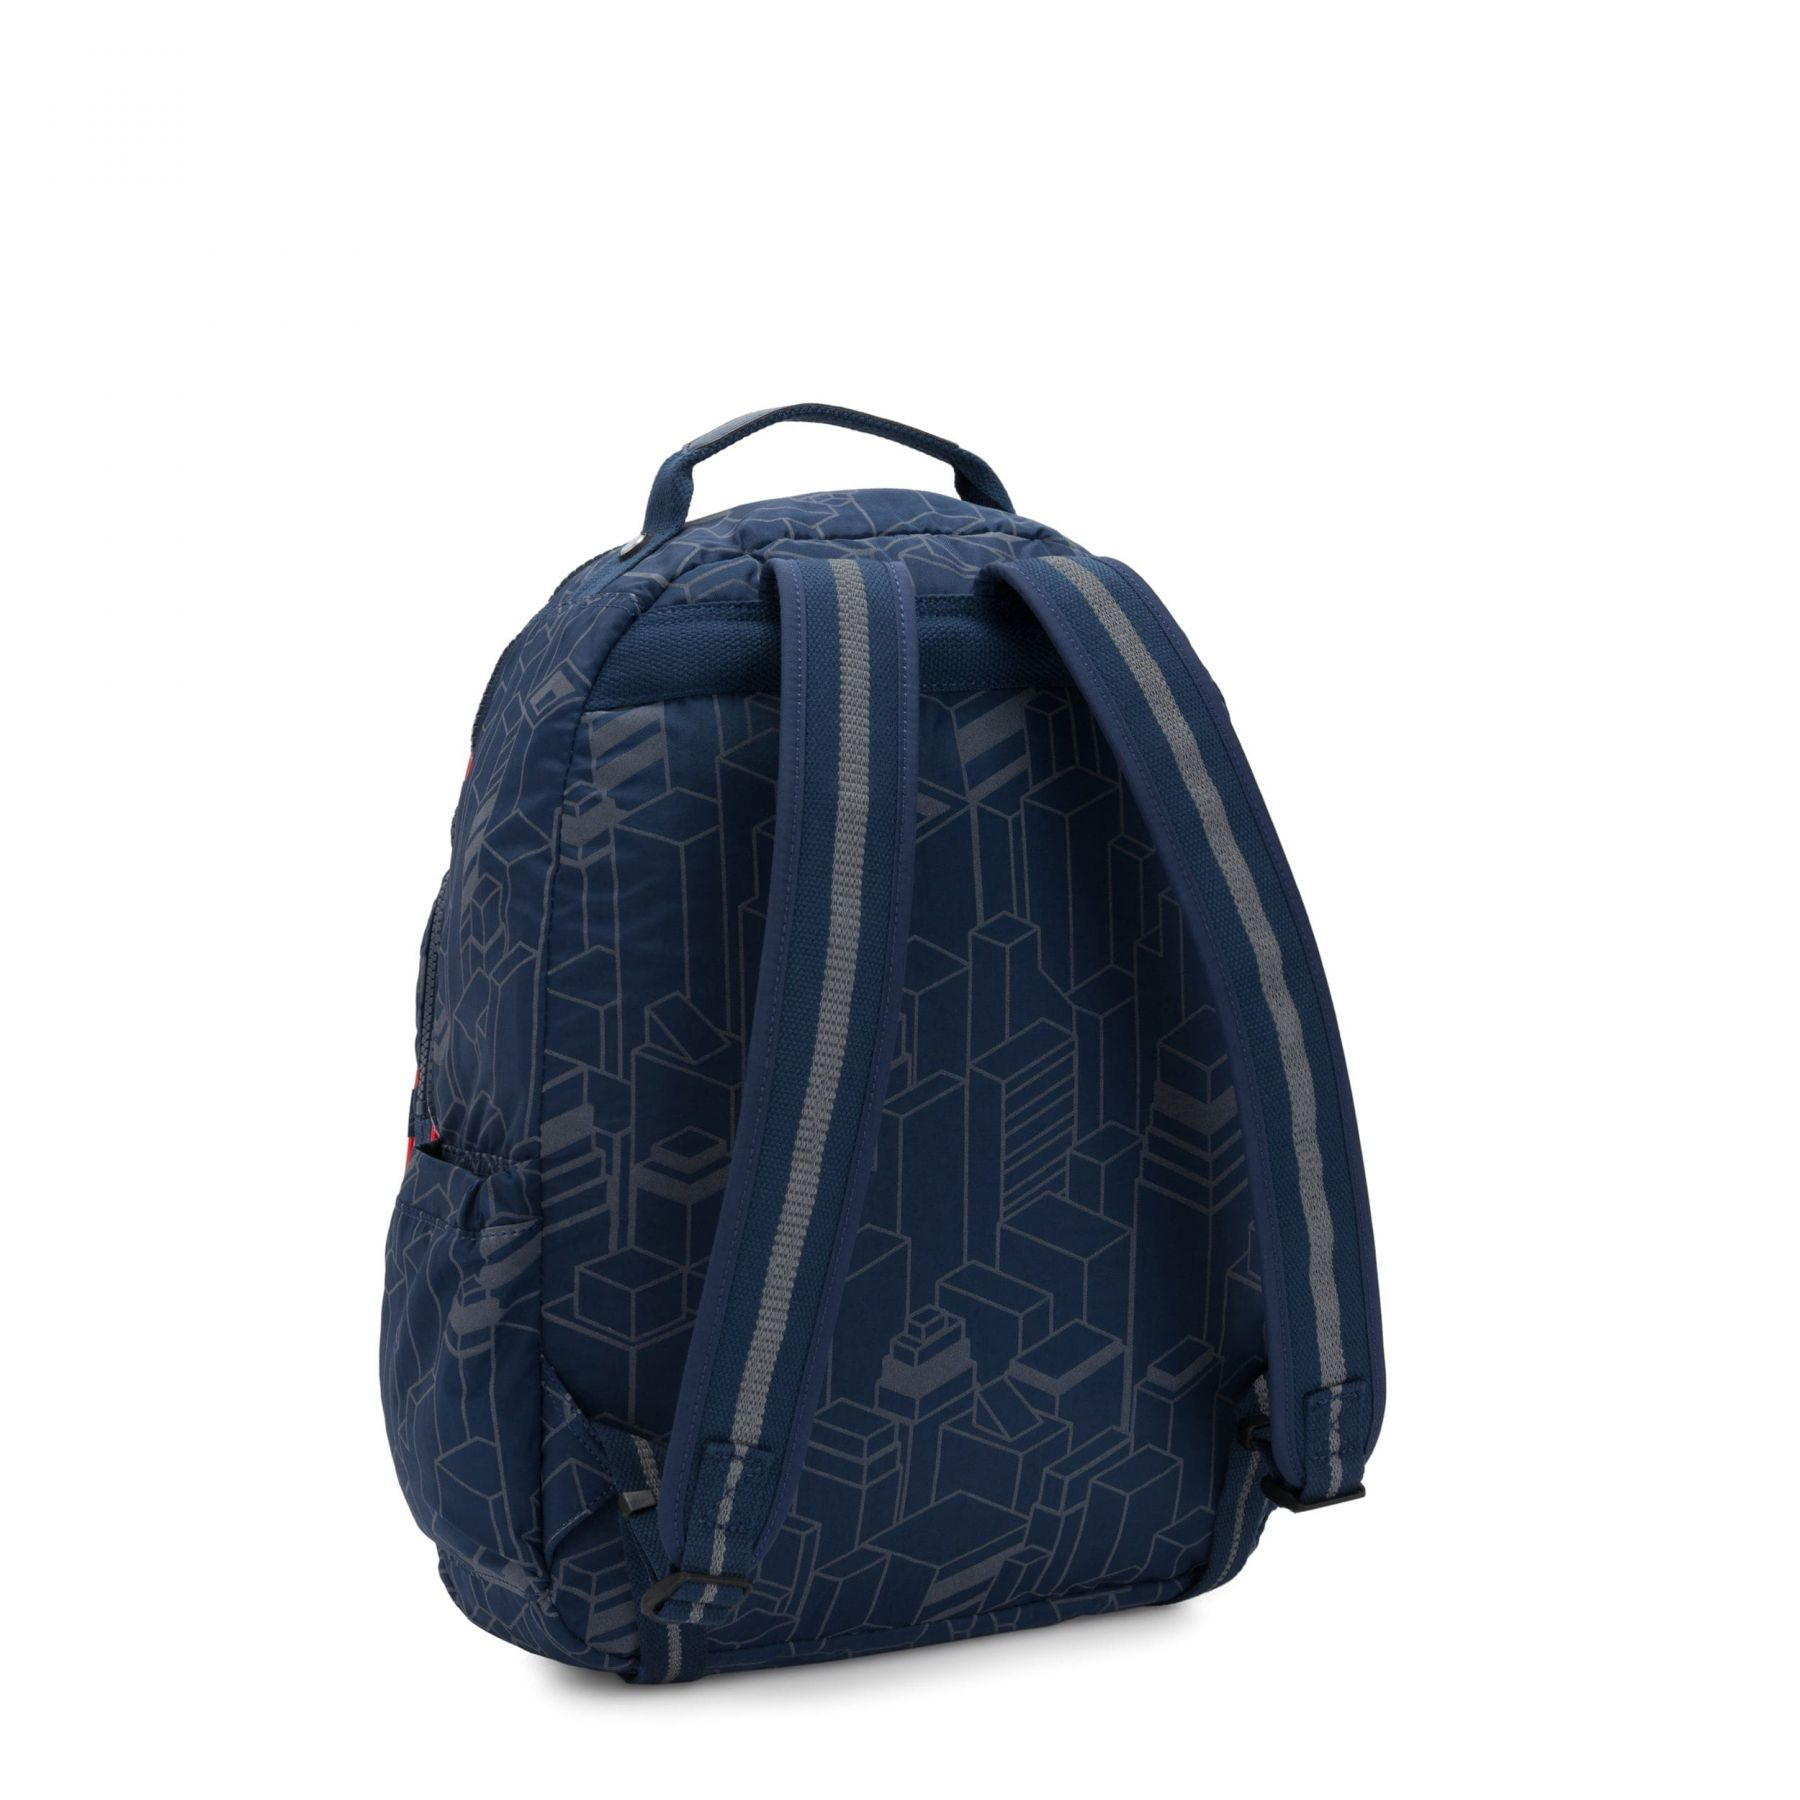 SEOUL LIGHT UP SCHOOL BAGS by Kipling